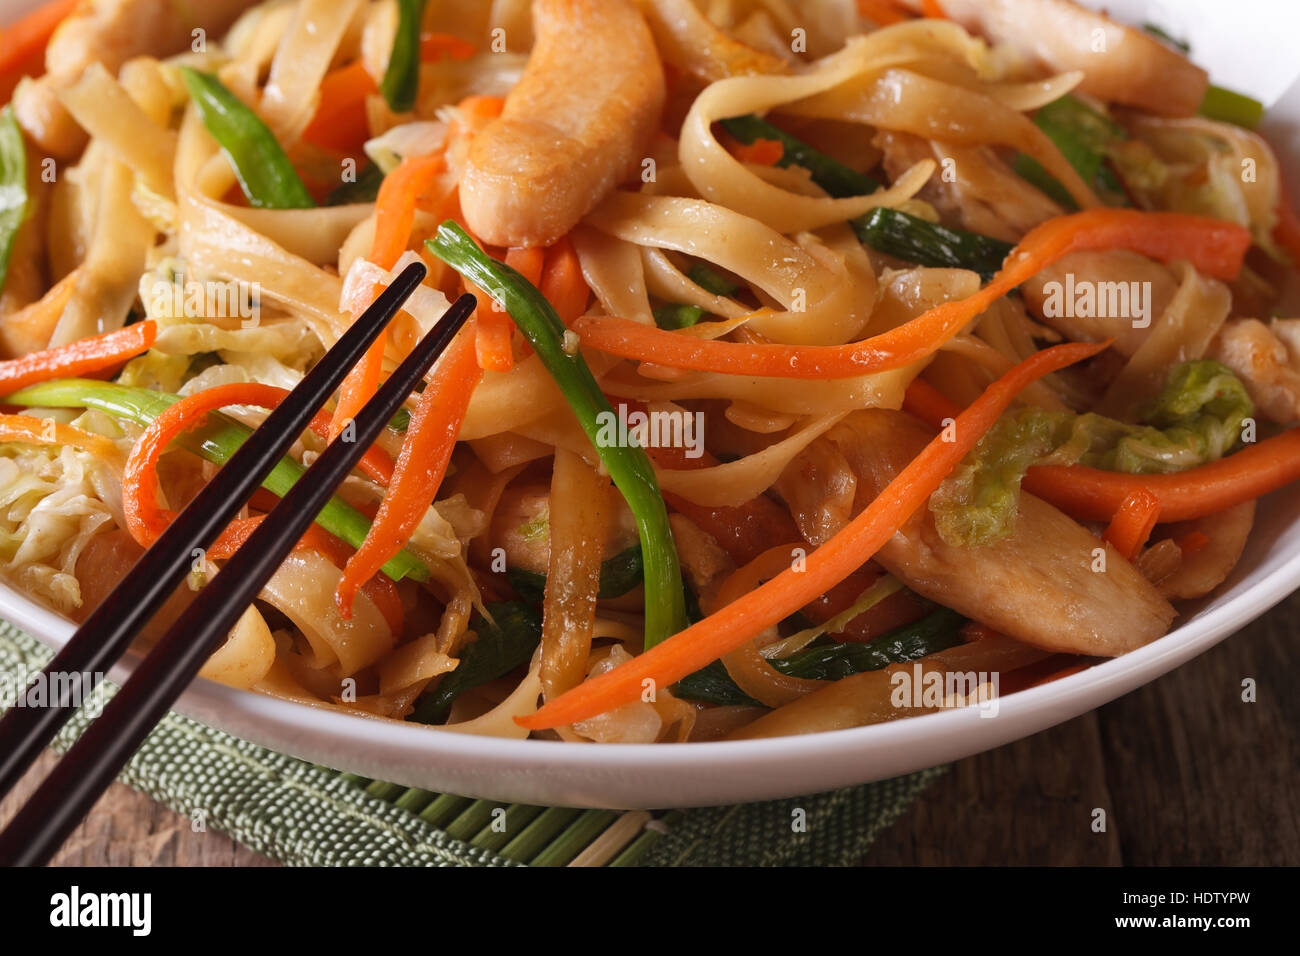 Chinese food: fried noodles with chicken and vegetables macro. horizontal - Stock Image